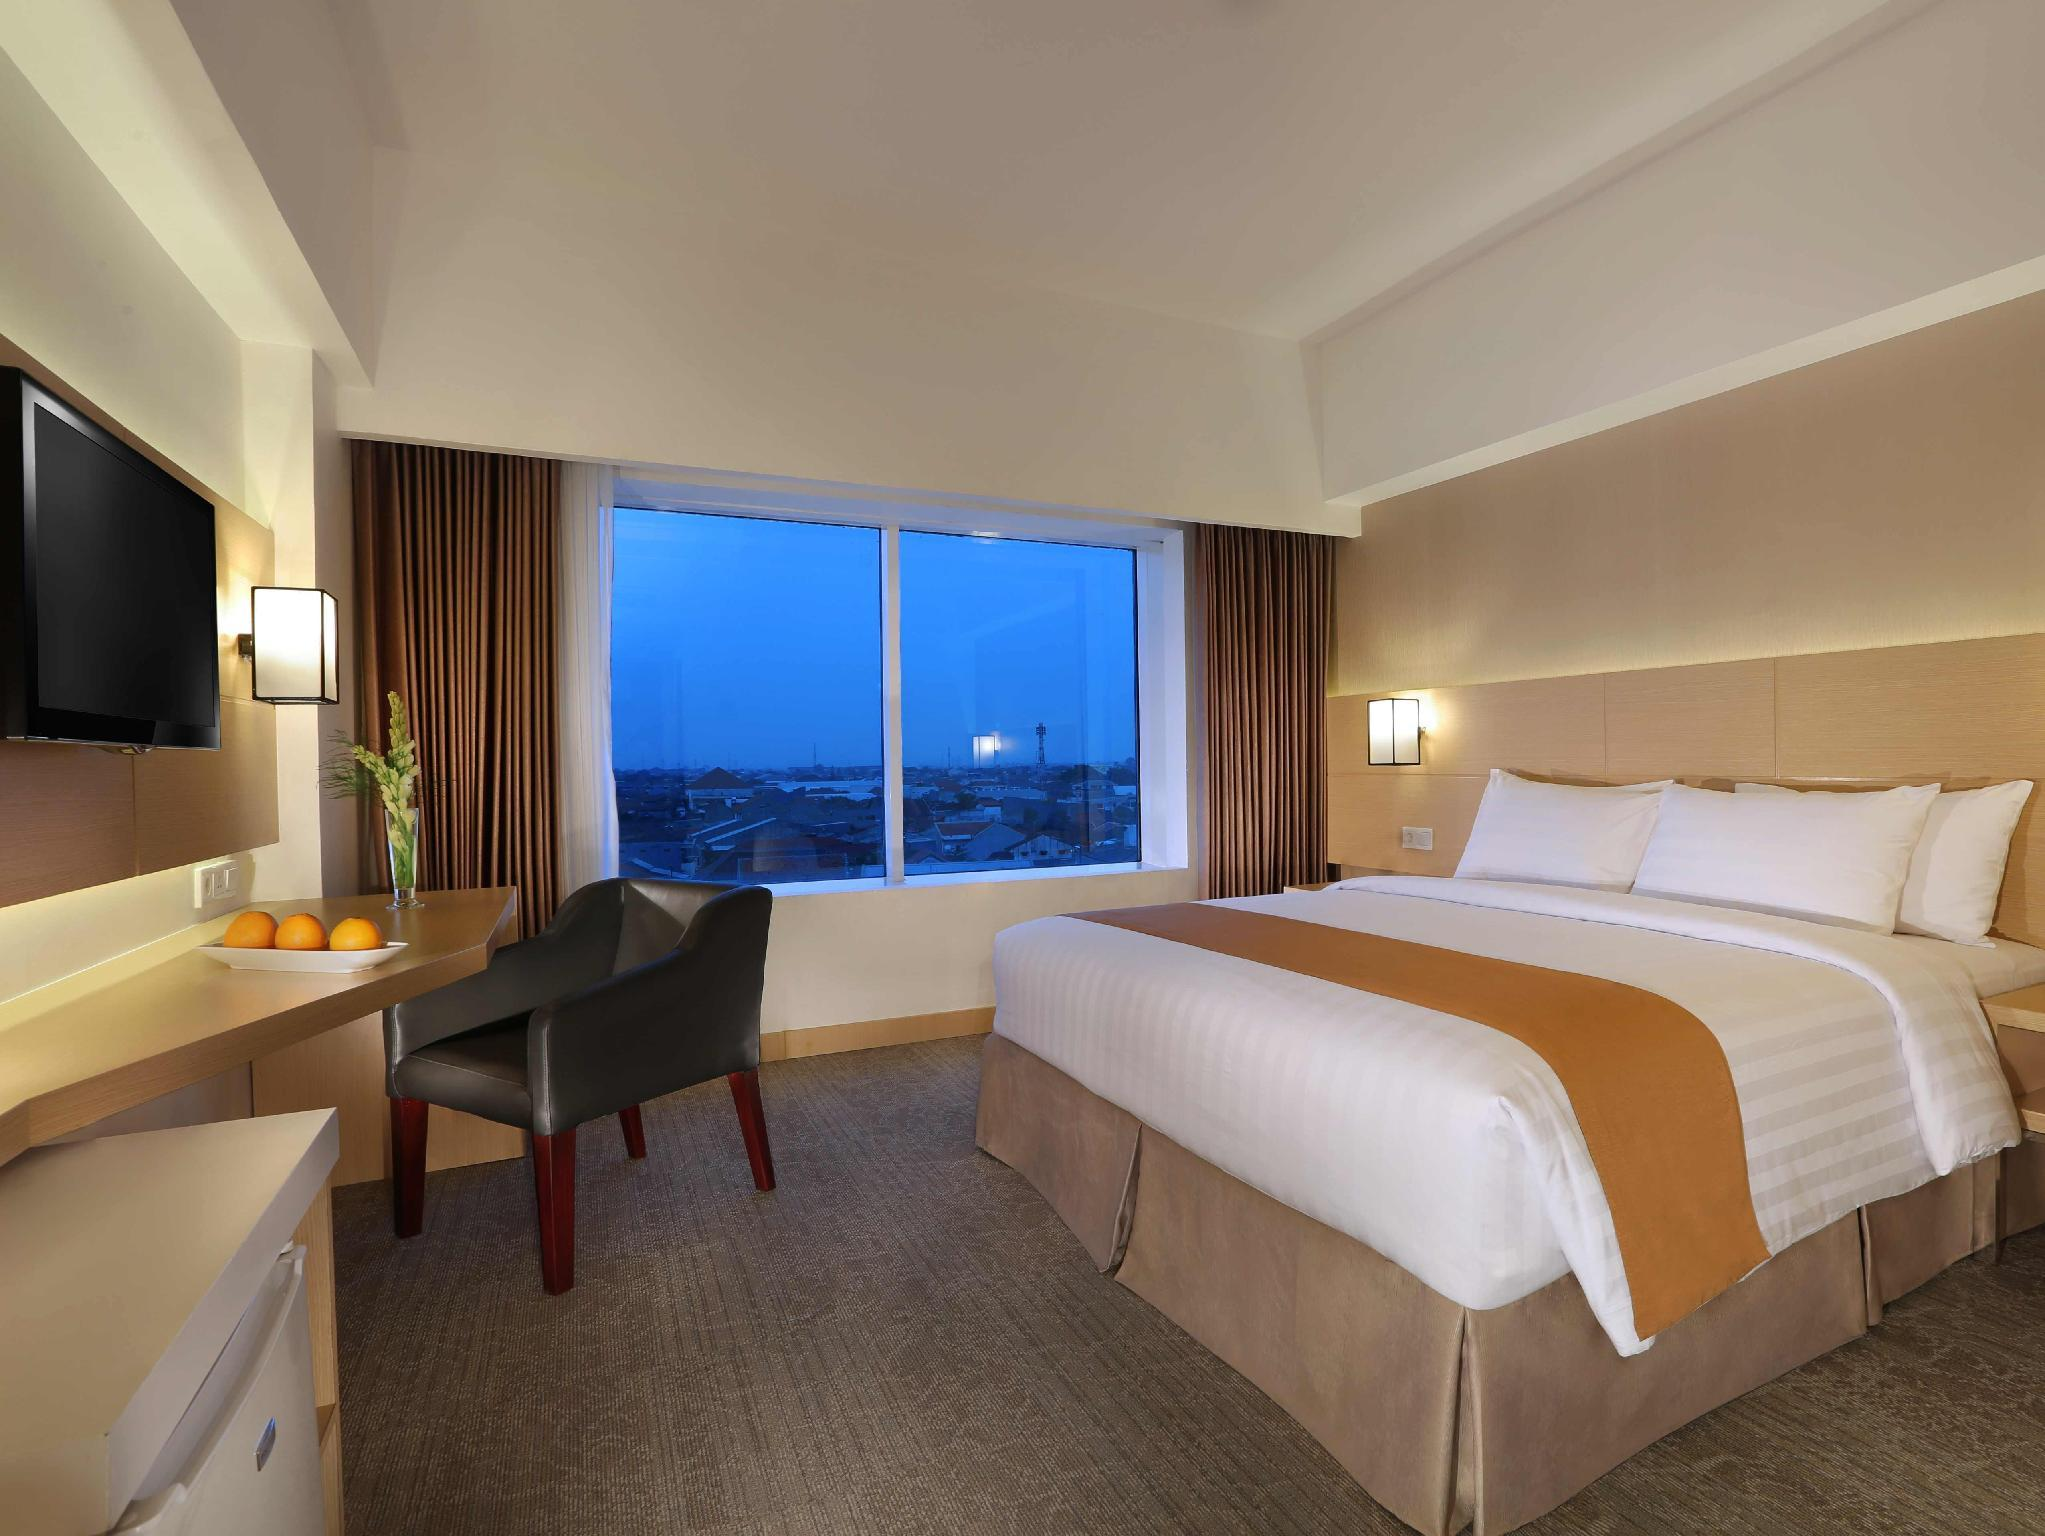 Aston Semarang Hotel & Convention Center